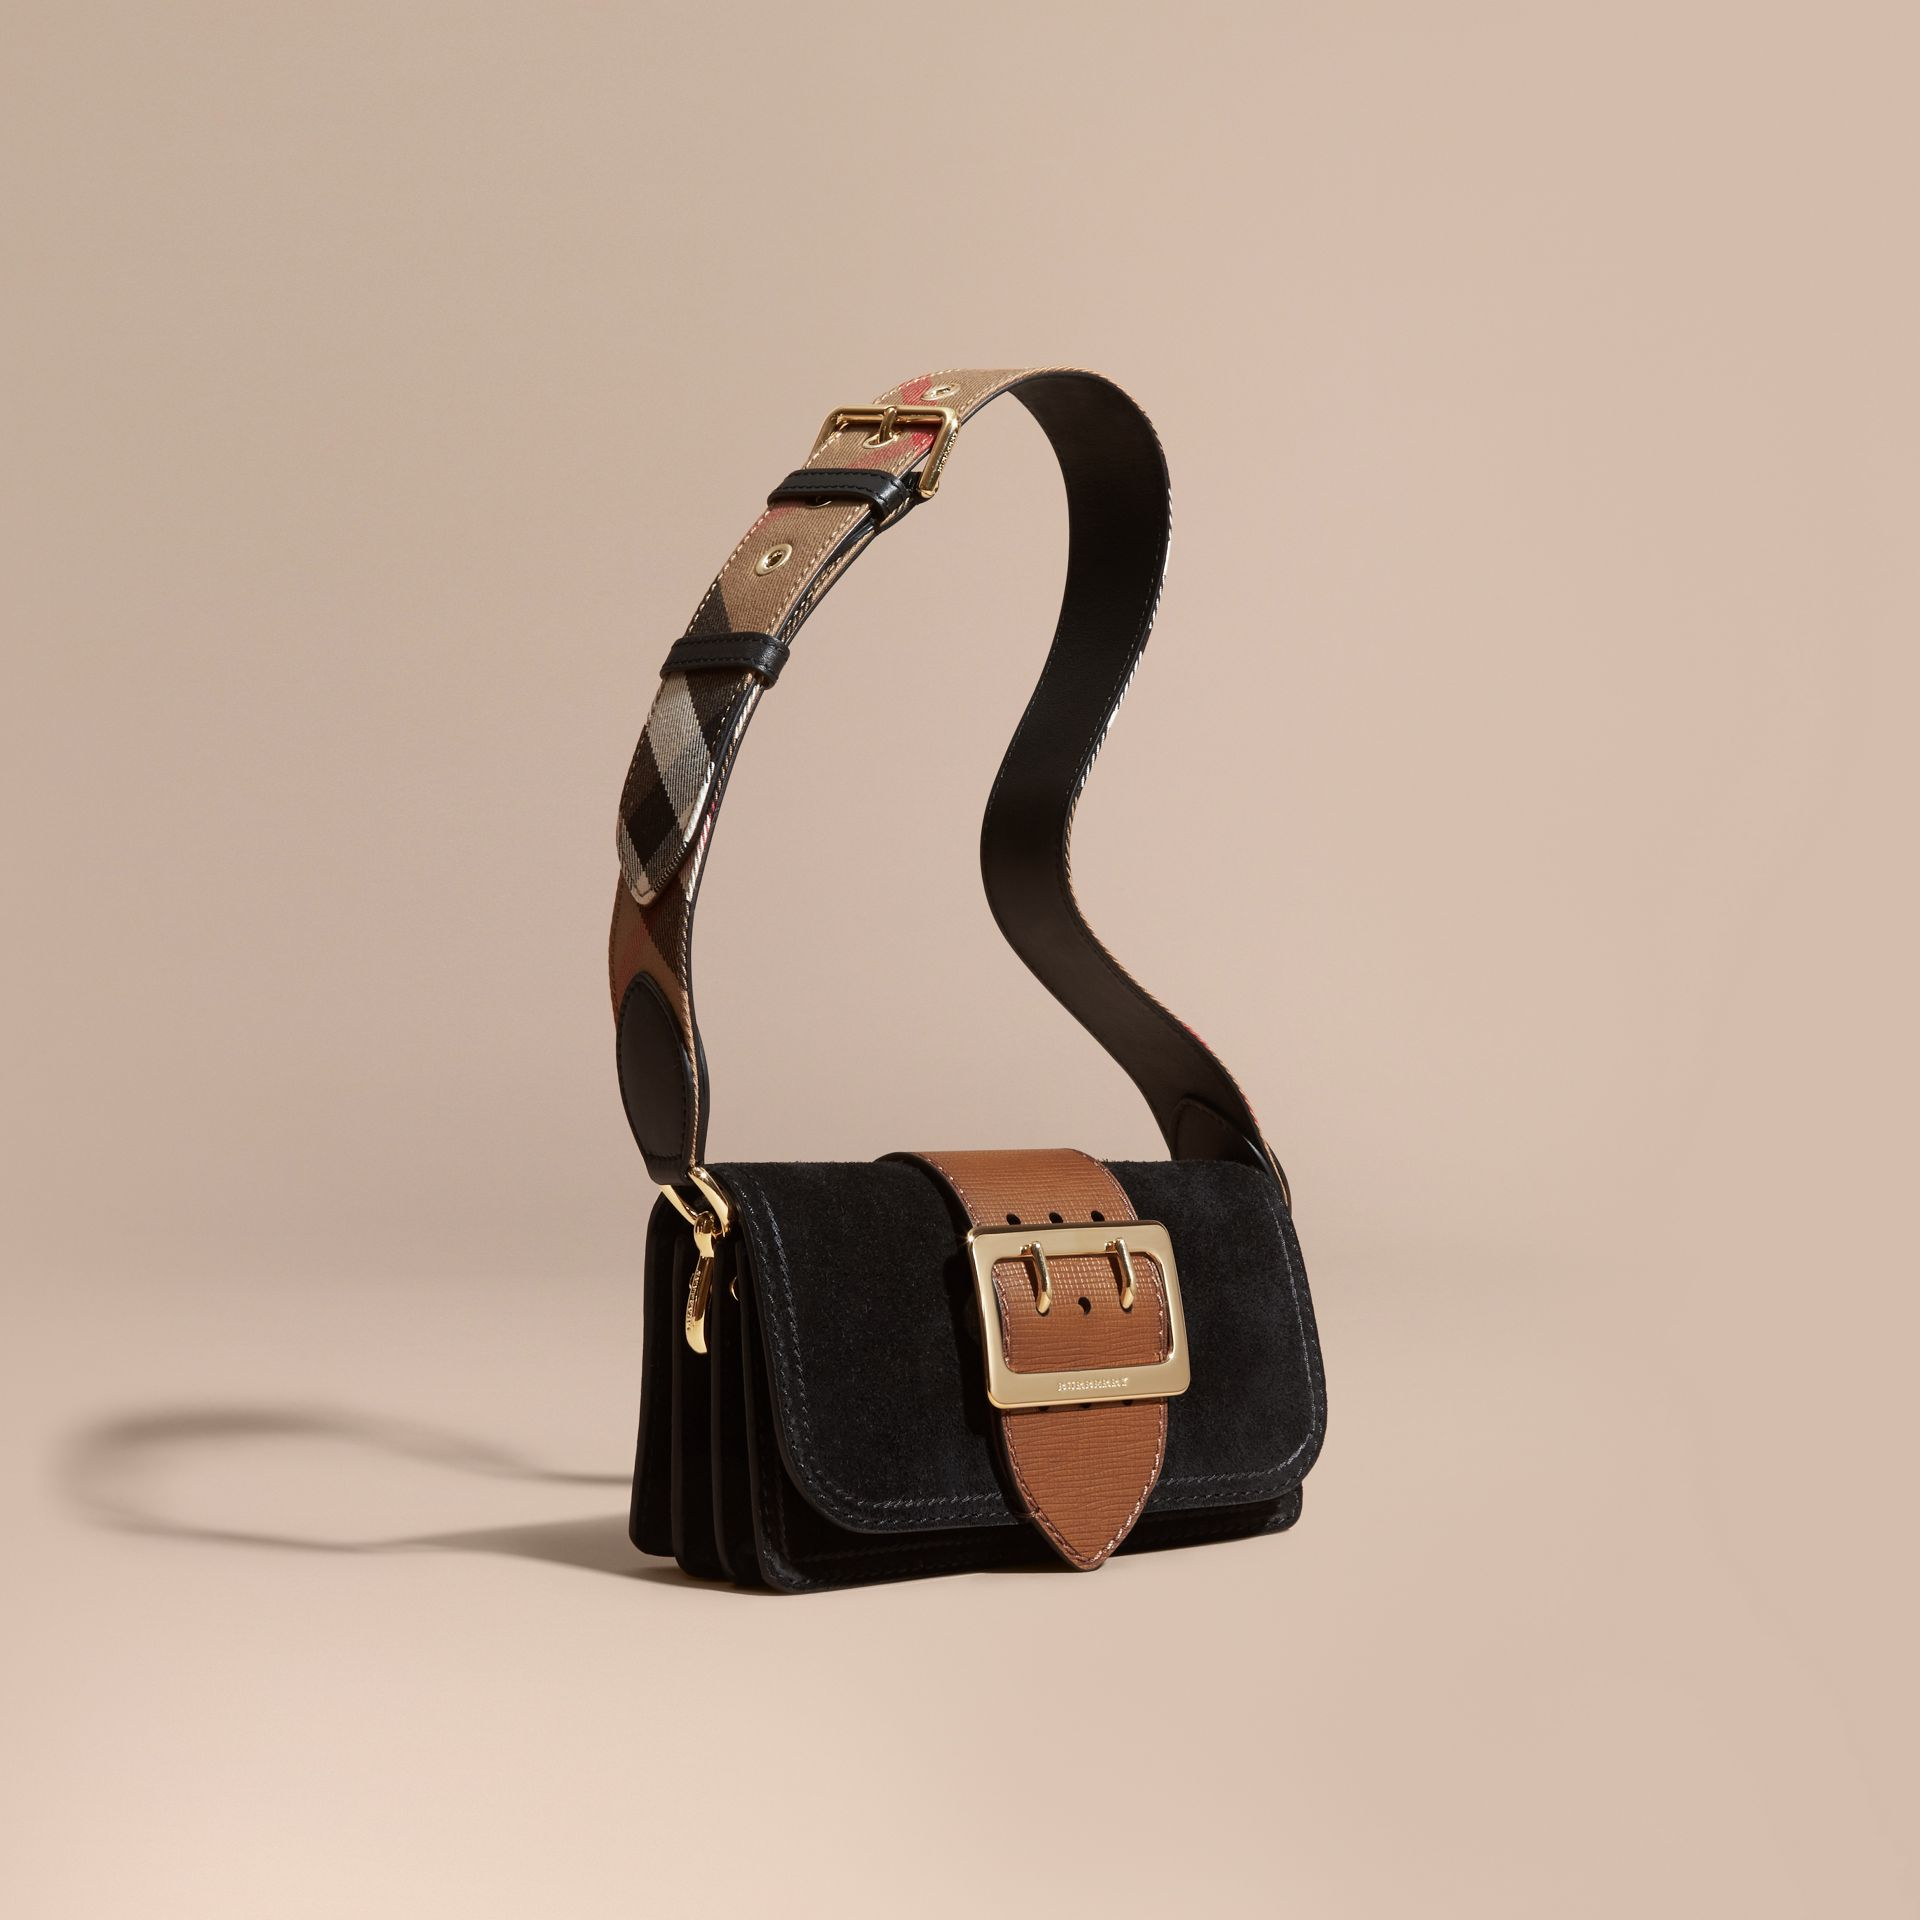 Black / tan The Small Buckle Bag in Suede with Topstitching Black / Tan - gallery image 1